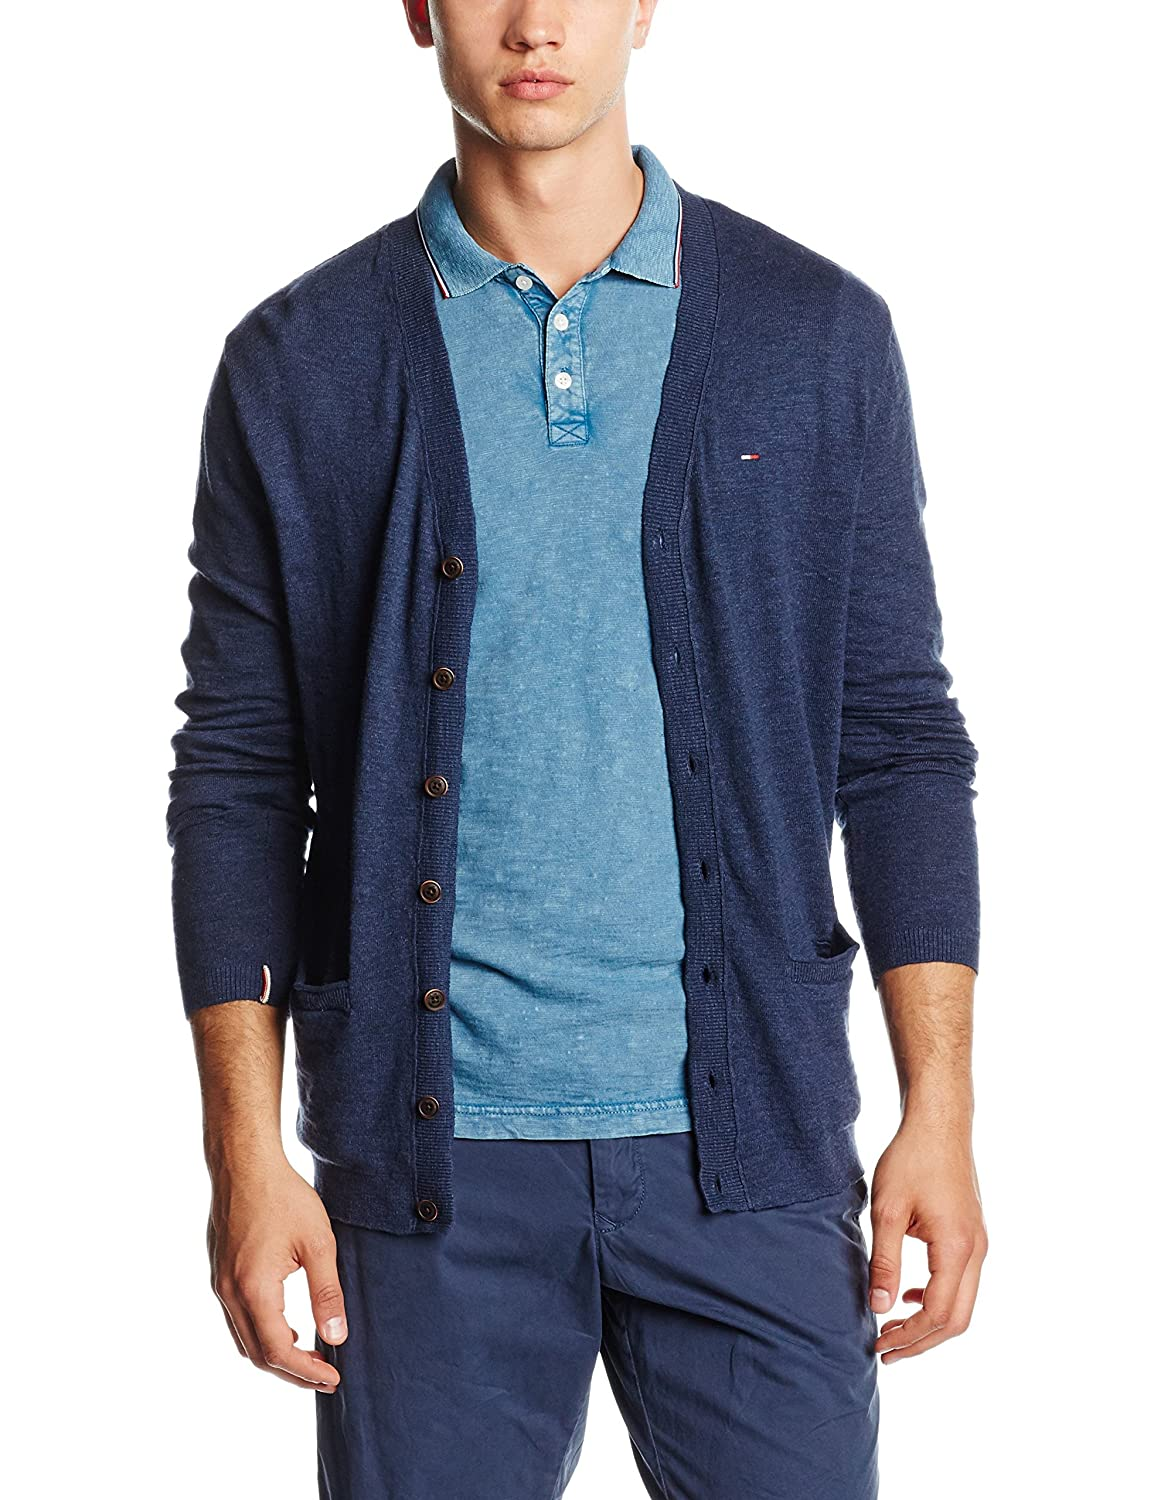 Hilfiger Denim Herren Strickjacke Thdm Basic Cardigan L/s 3